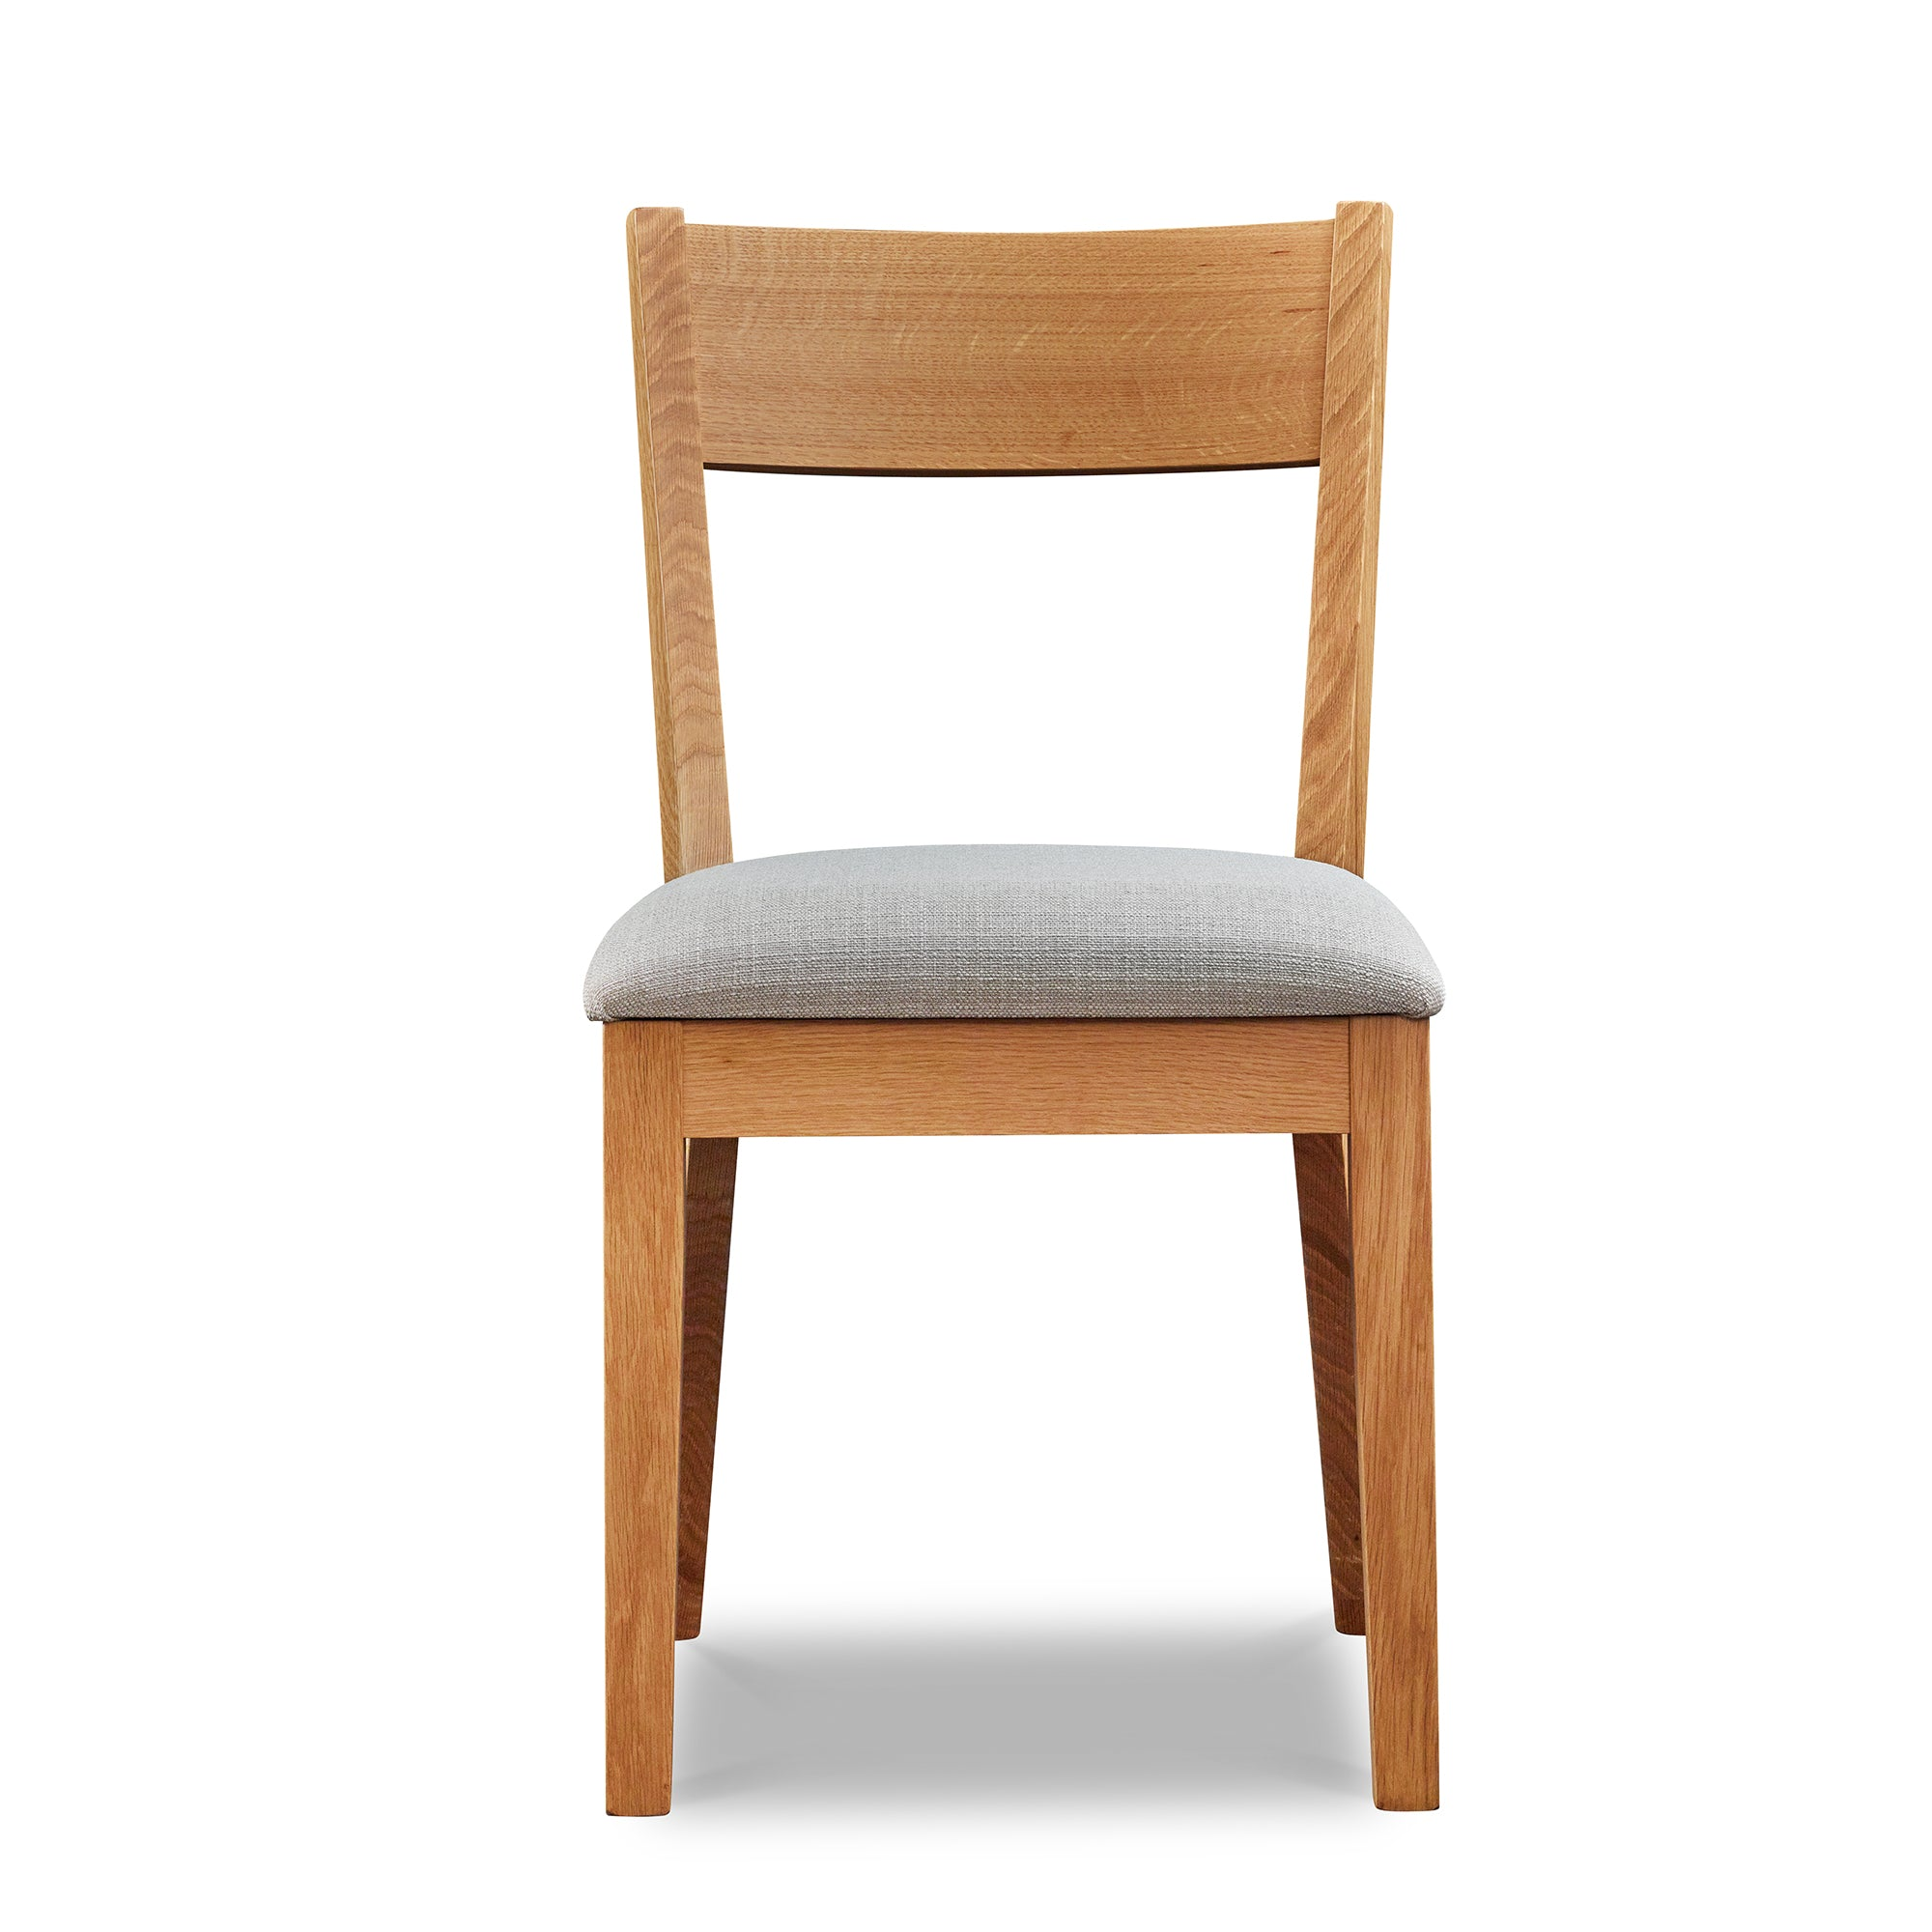 Front-facing view of a modern Scandinavian style solid wood dining chair, in white oak with grey cushion, from Maine's Chilton Furniture Co.